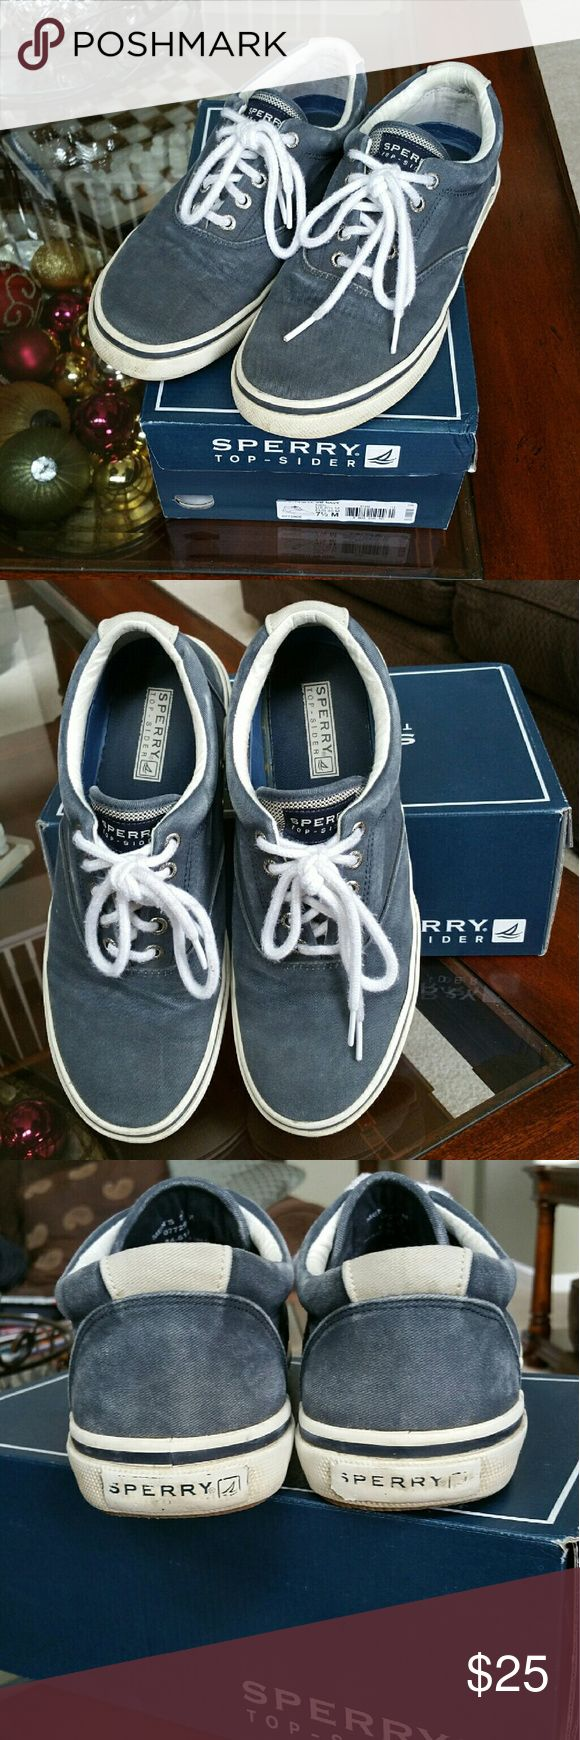 Sperry Top-Sider Mens Navy Canvas Shoes Sperry Top-Sider Mens Navy Canvas Slip On Boat Shoes Size 7 1/2. Pre-owned in good condition w/ box.  Shows normal wear on soles of shoes.  Please check all photos.  Thank you. Sperry Top-Sider Shoes Loafers & Slip-Ons